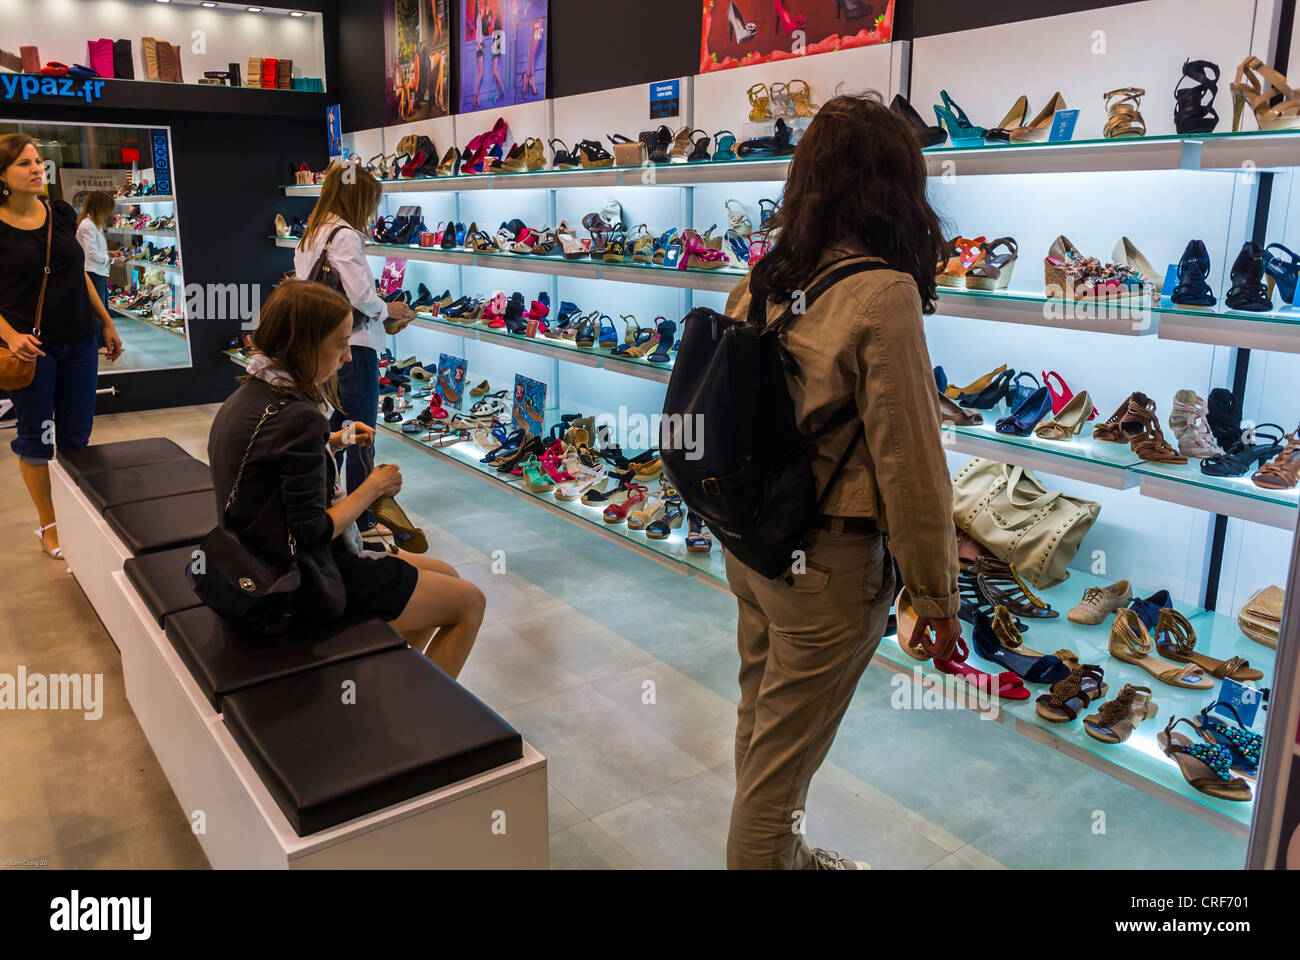 c17097438c1 Womens Shoe Display Shop Stock Photos & Womens Shoe Display Shop ...